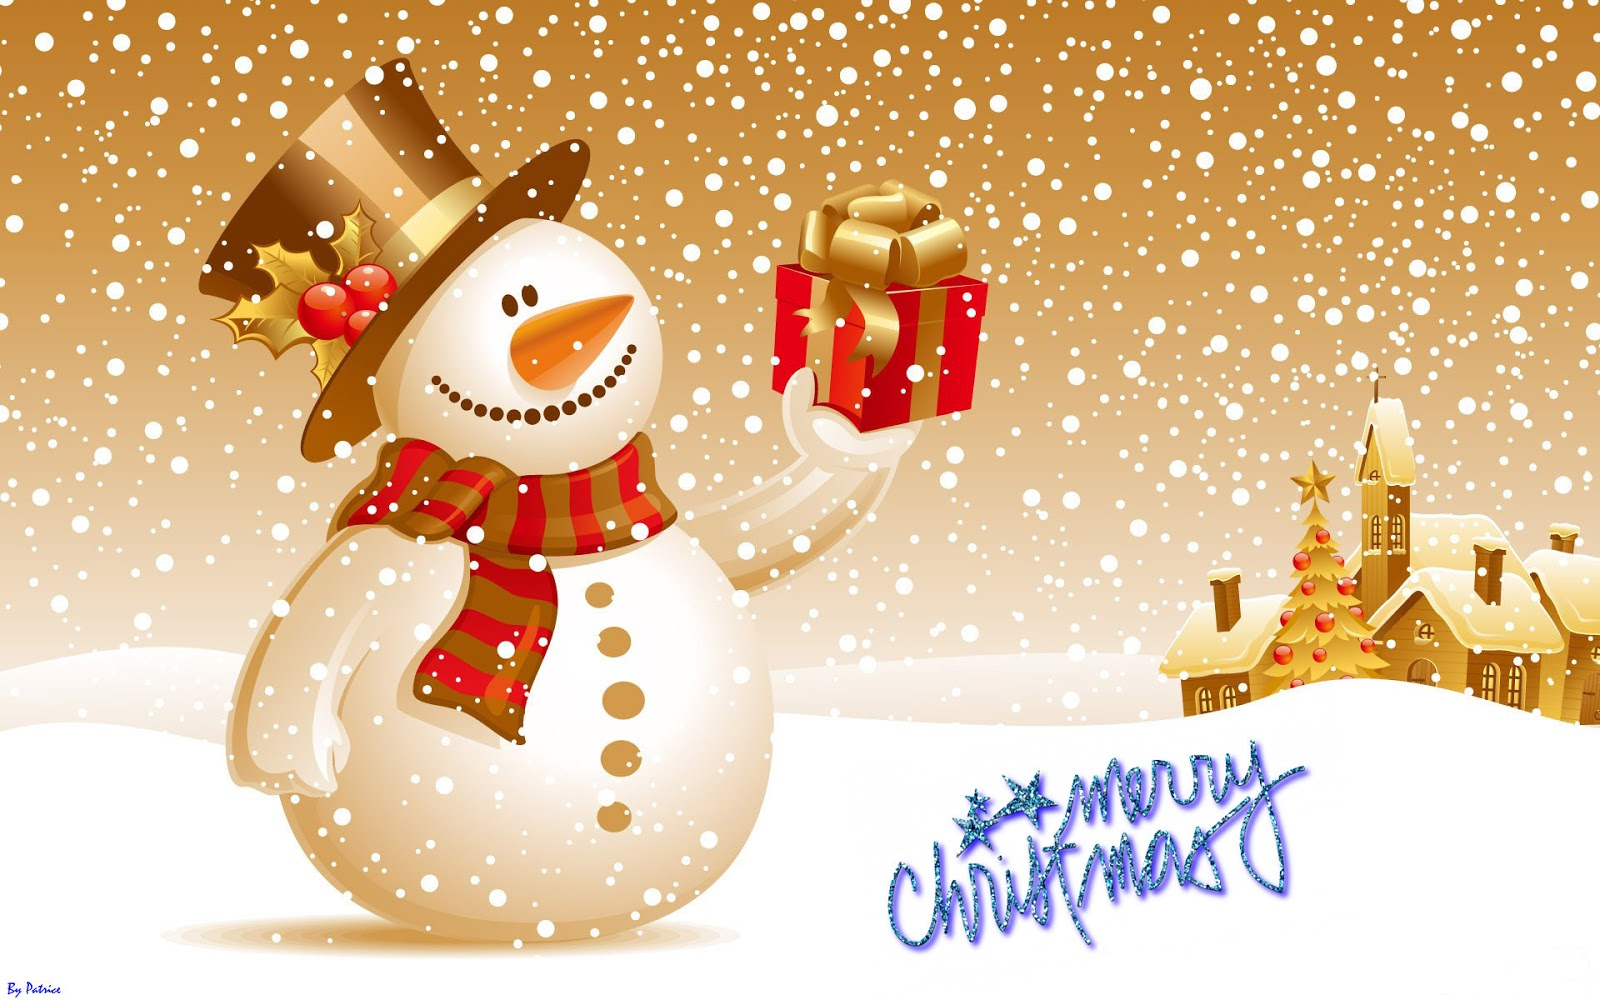 250 Merry Christmas Wishes Christmas Greeting Messages Merry